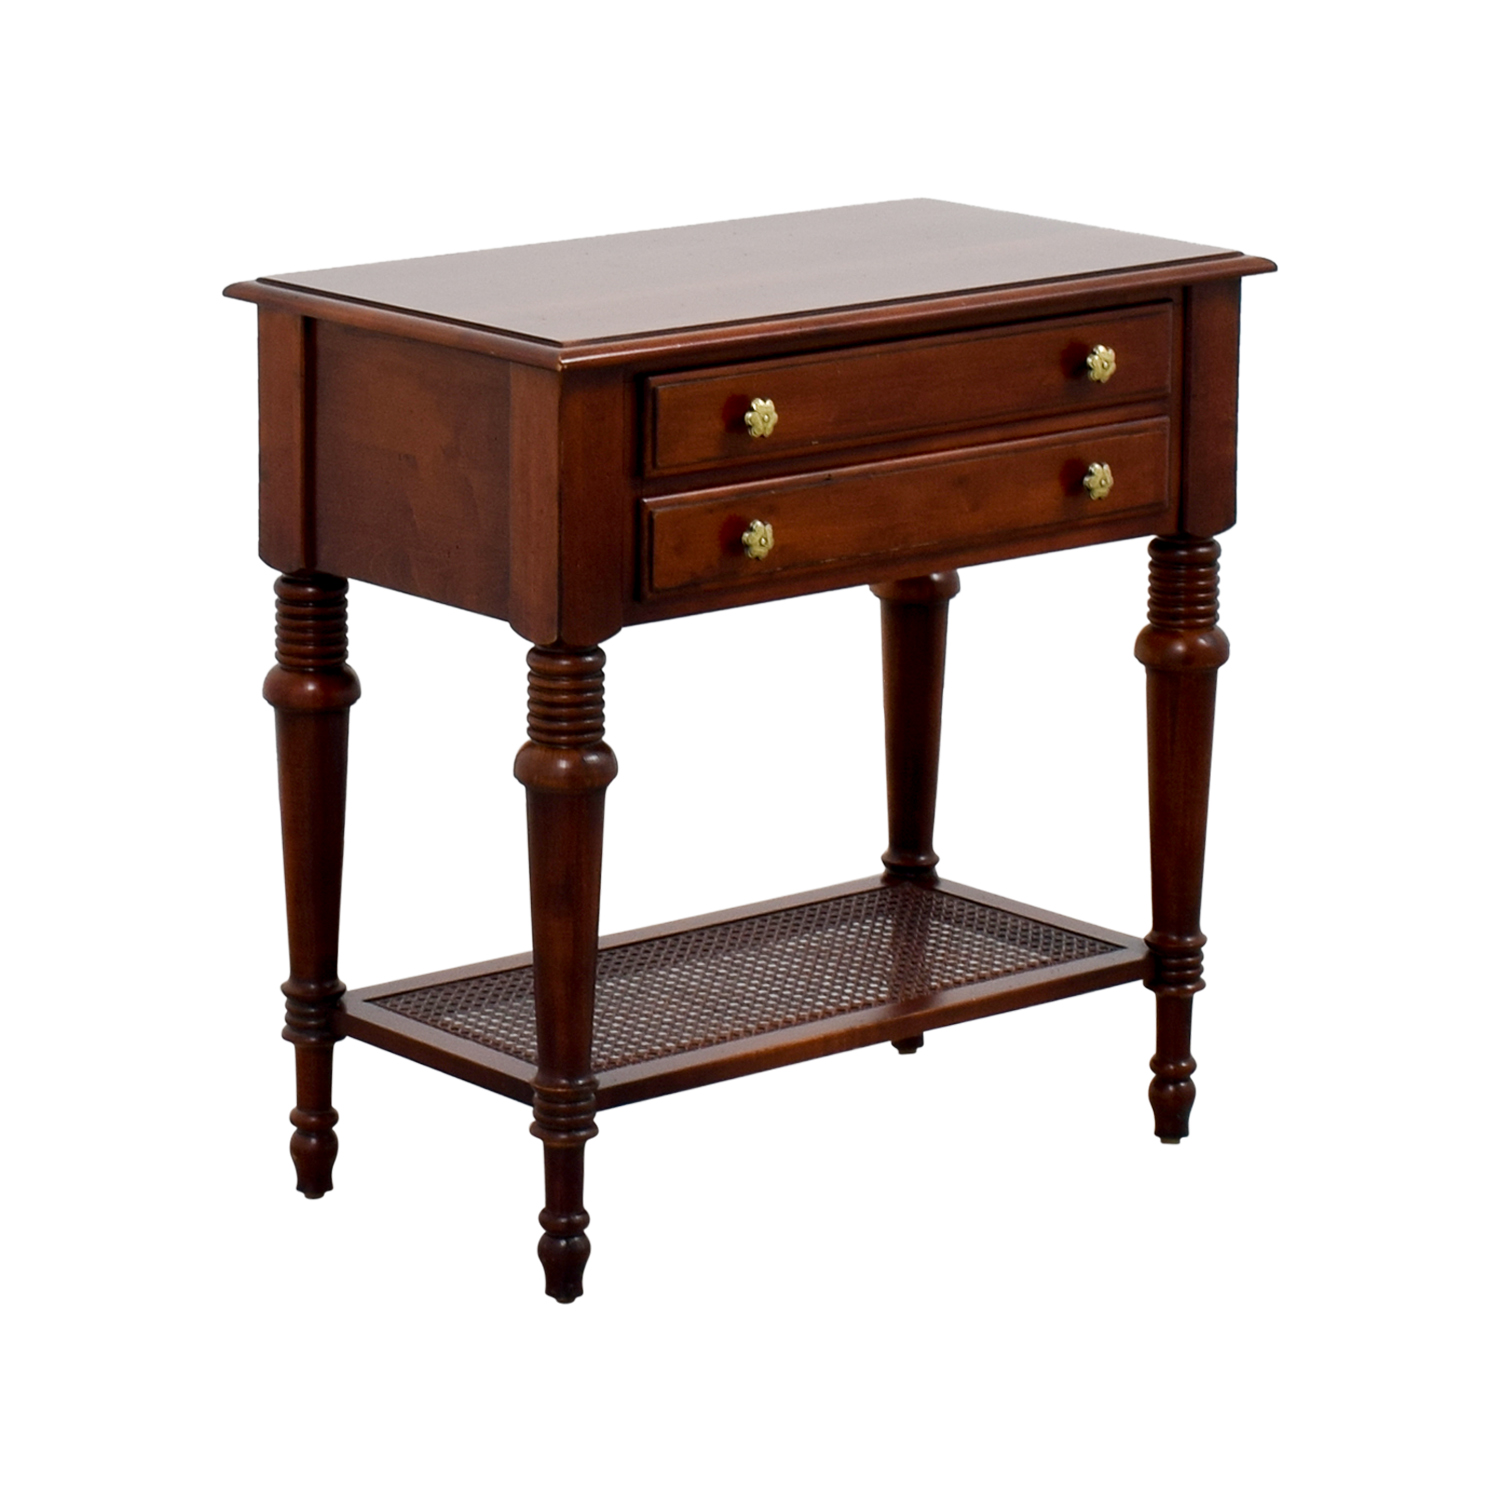 Used Ethan Allen Coffee Tables: Ethan Allen Ethan Allen Cayman Nightstand / Tables